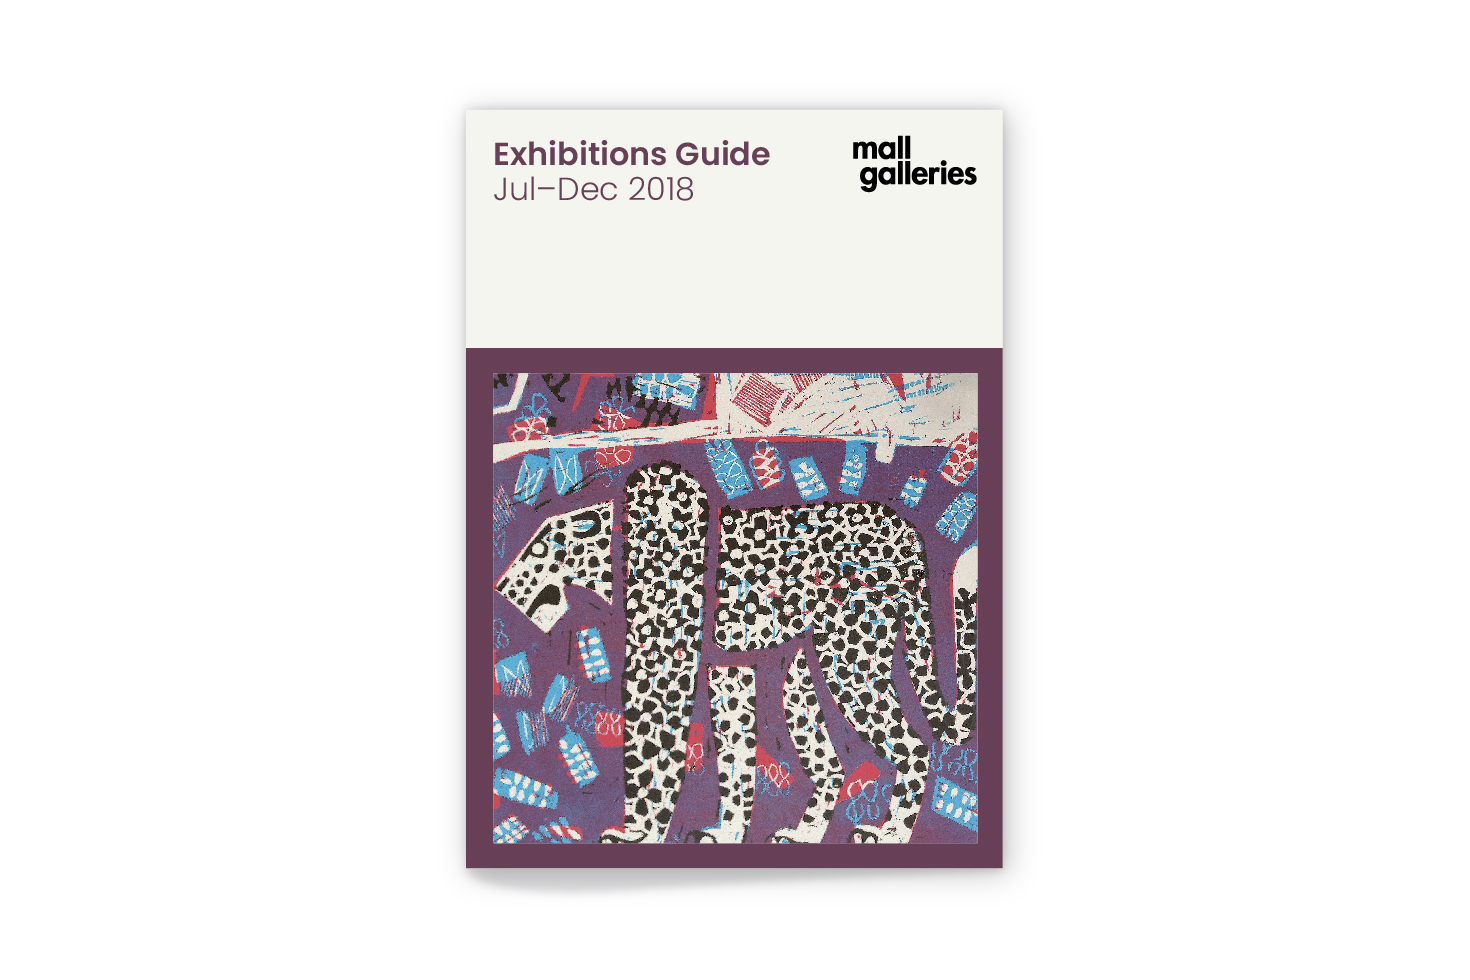 Mall Galleries exhibition guide